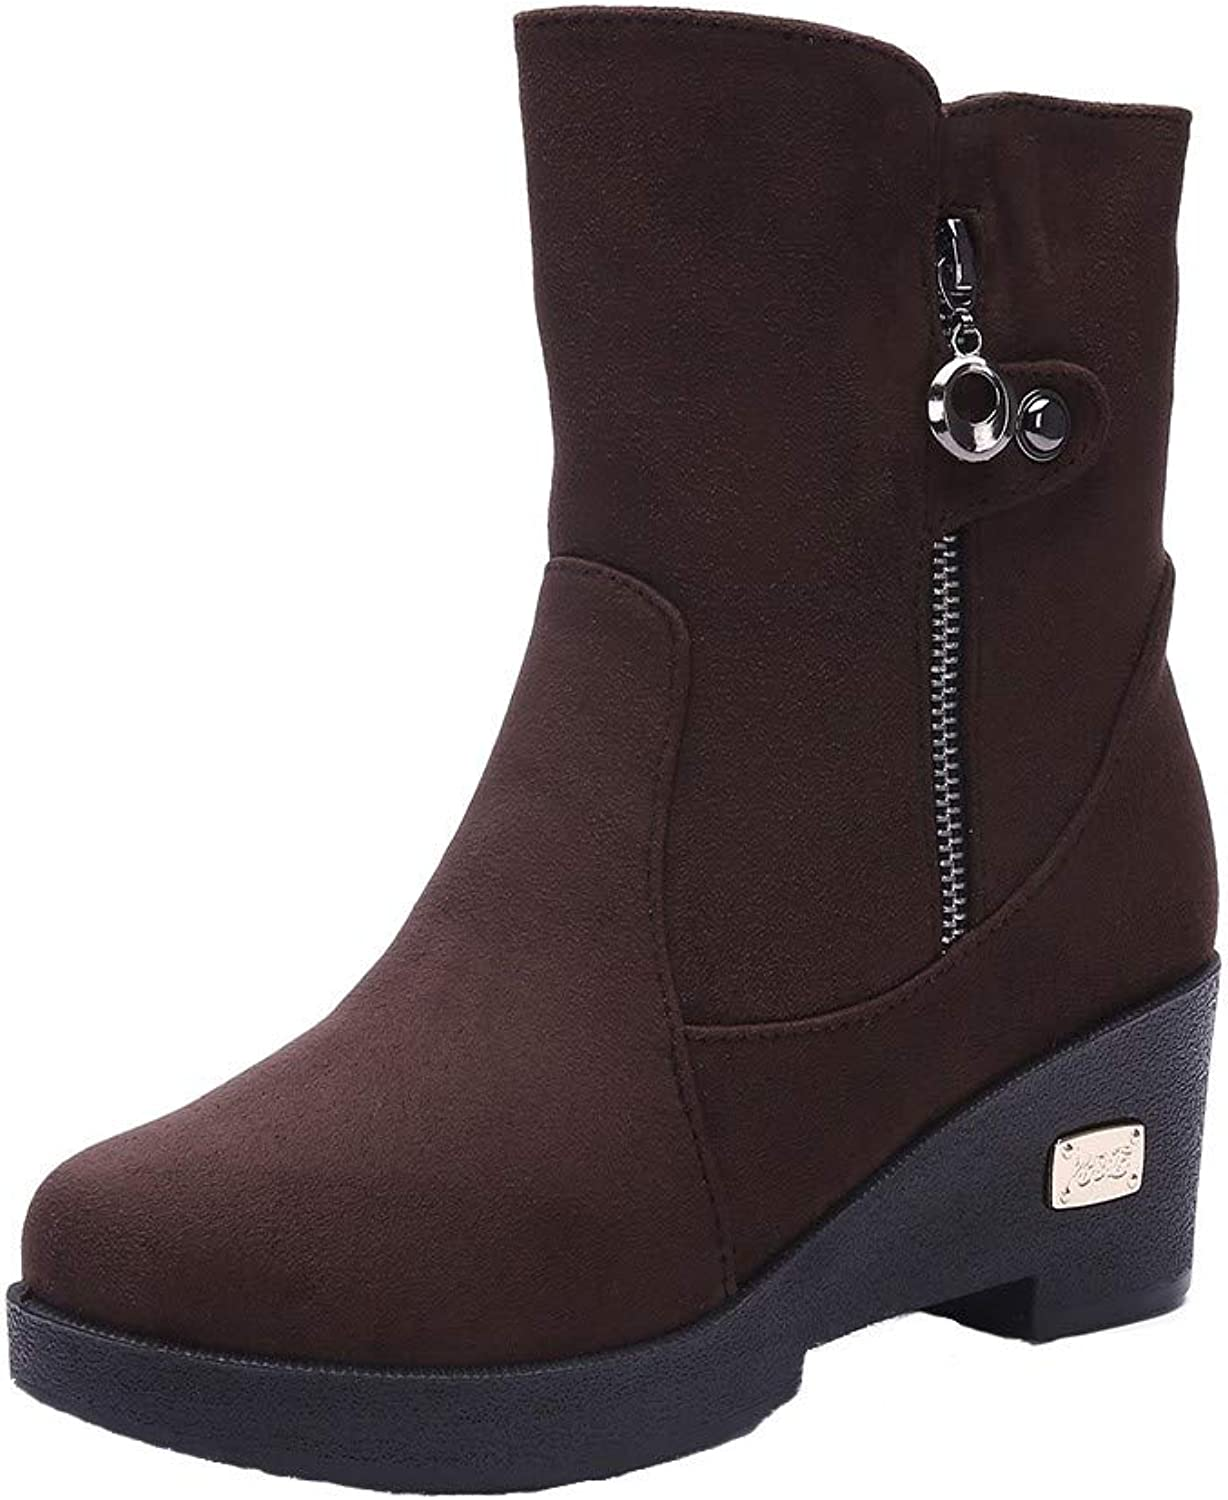 JESPER Women's Spring Wedge Soft Snow Ankle Boots Breathable Side Zipper Warm Boots